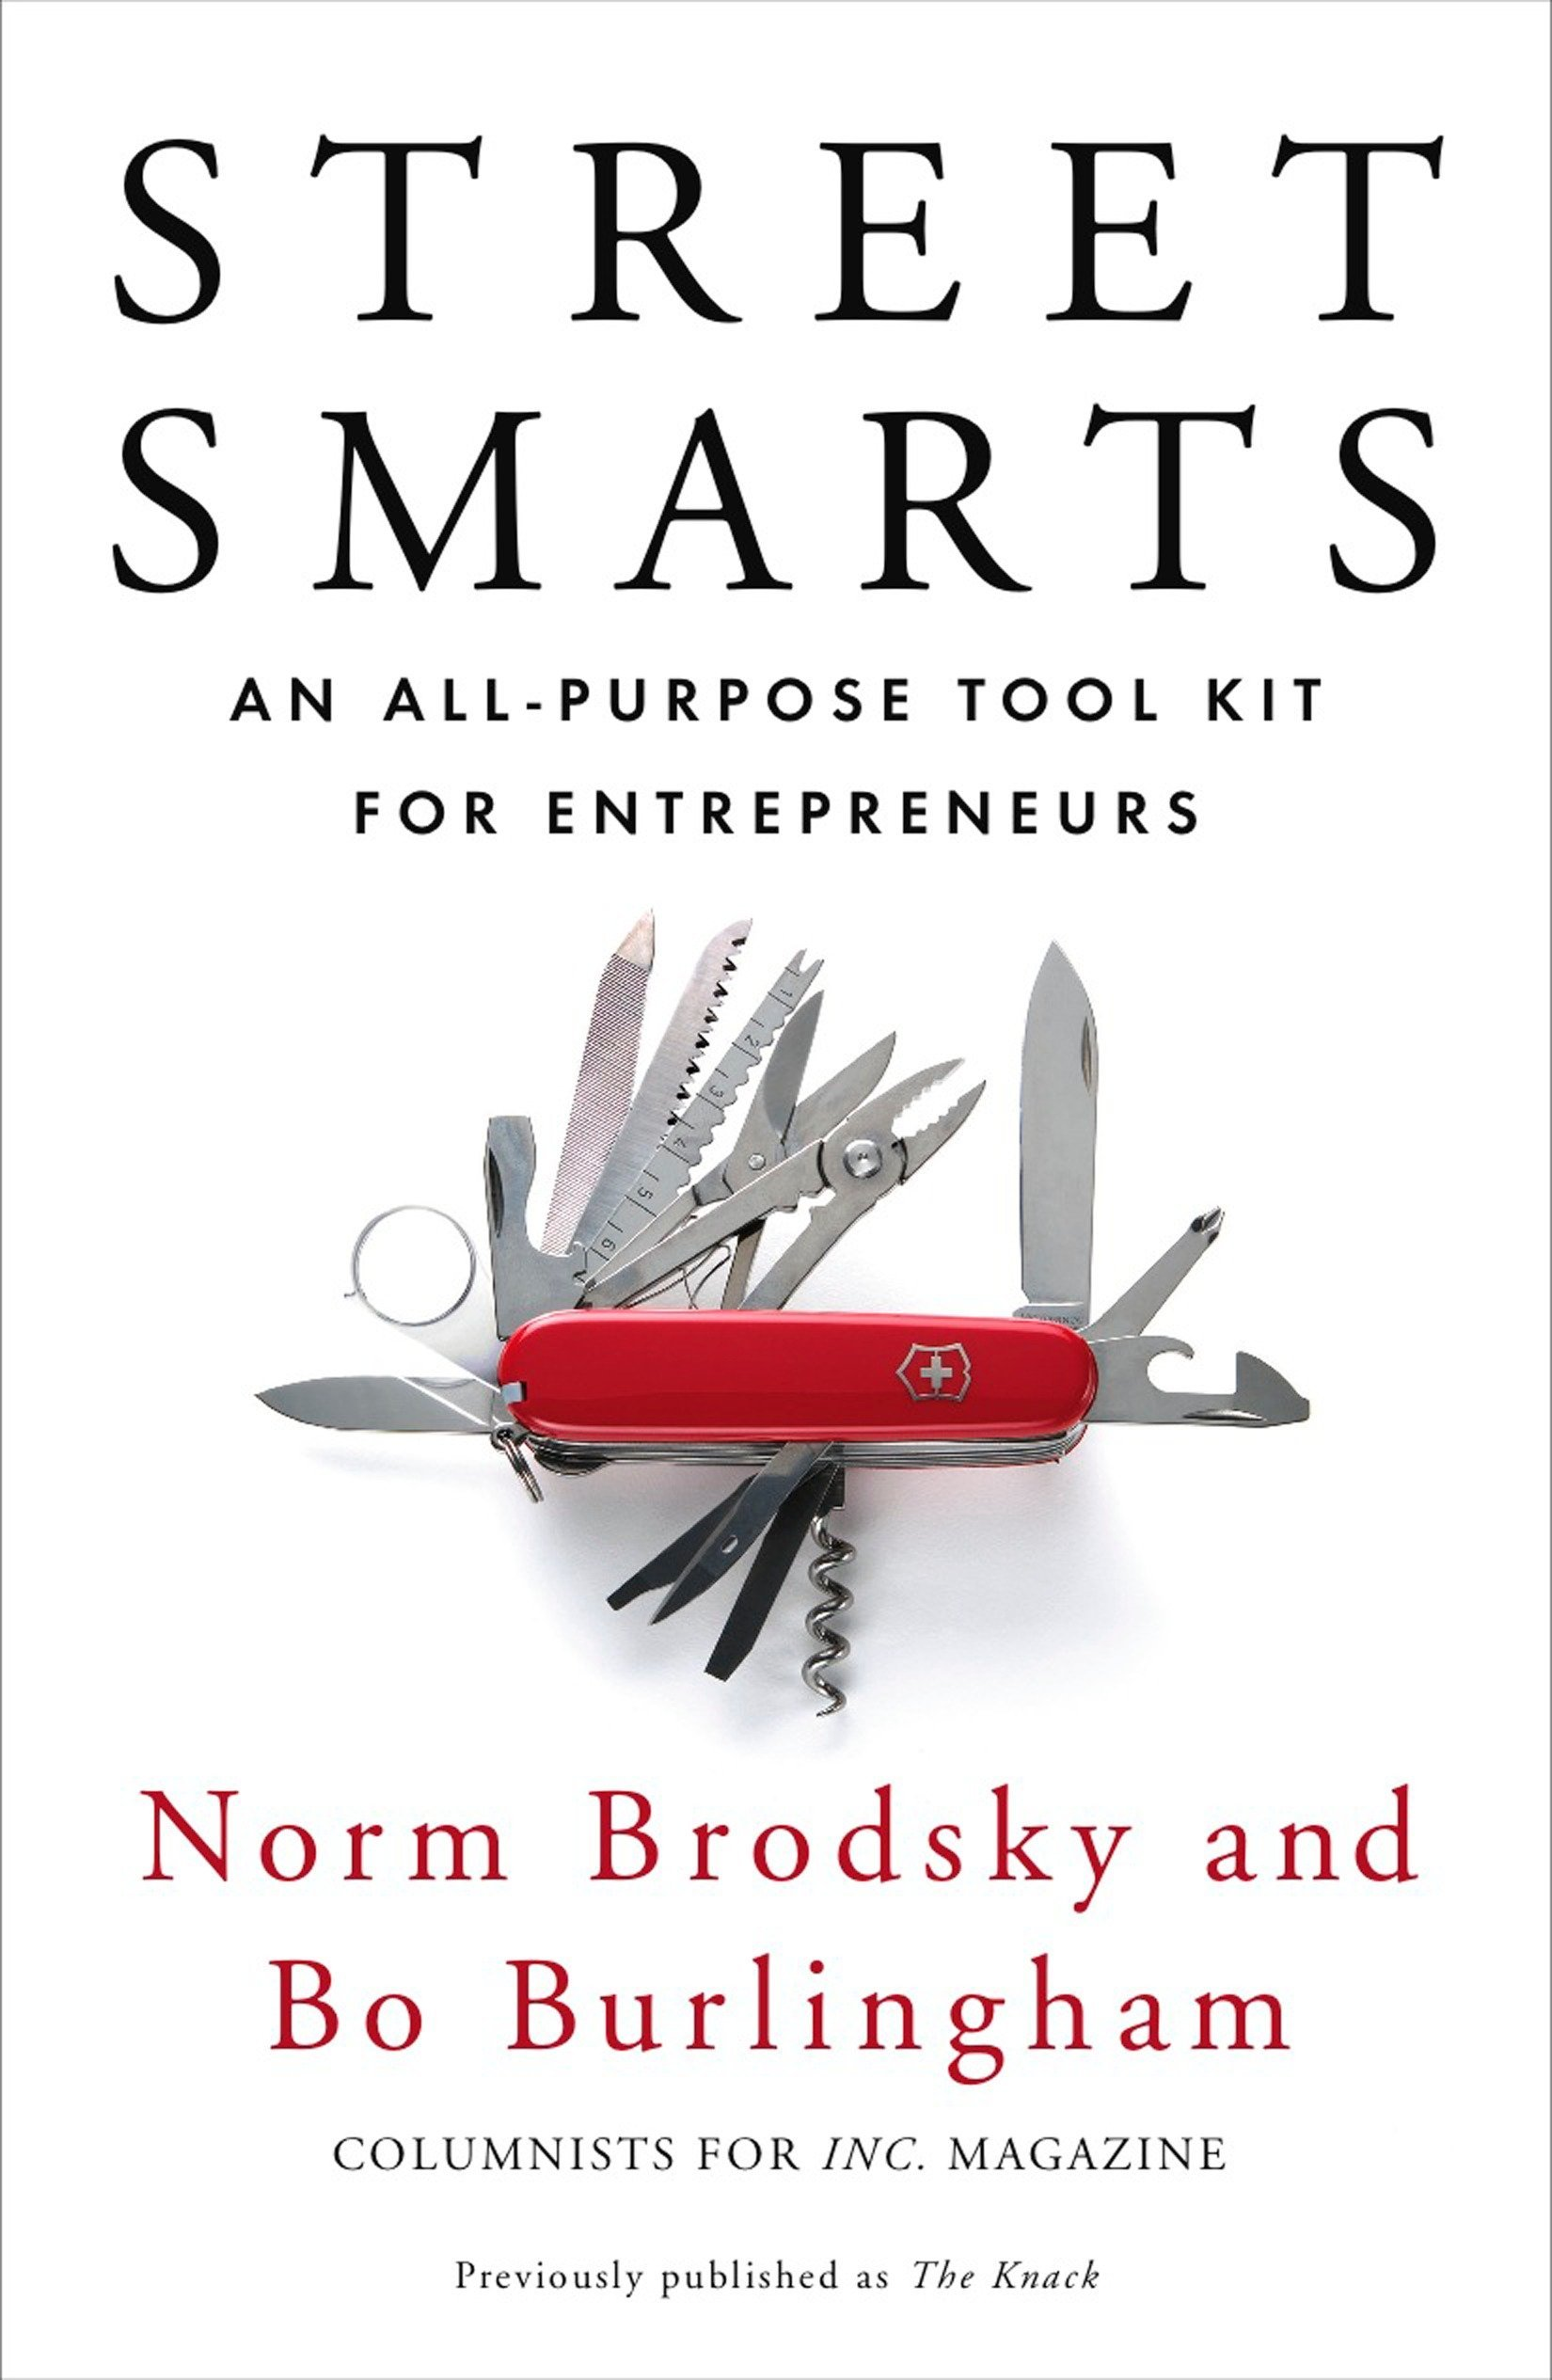 Image OfStreet Smarts: An All-Purpose Tool Kit For Entrepreneurs